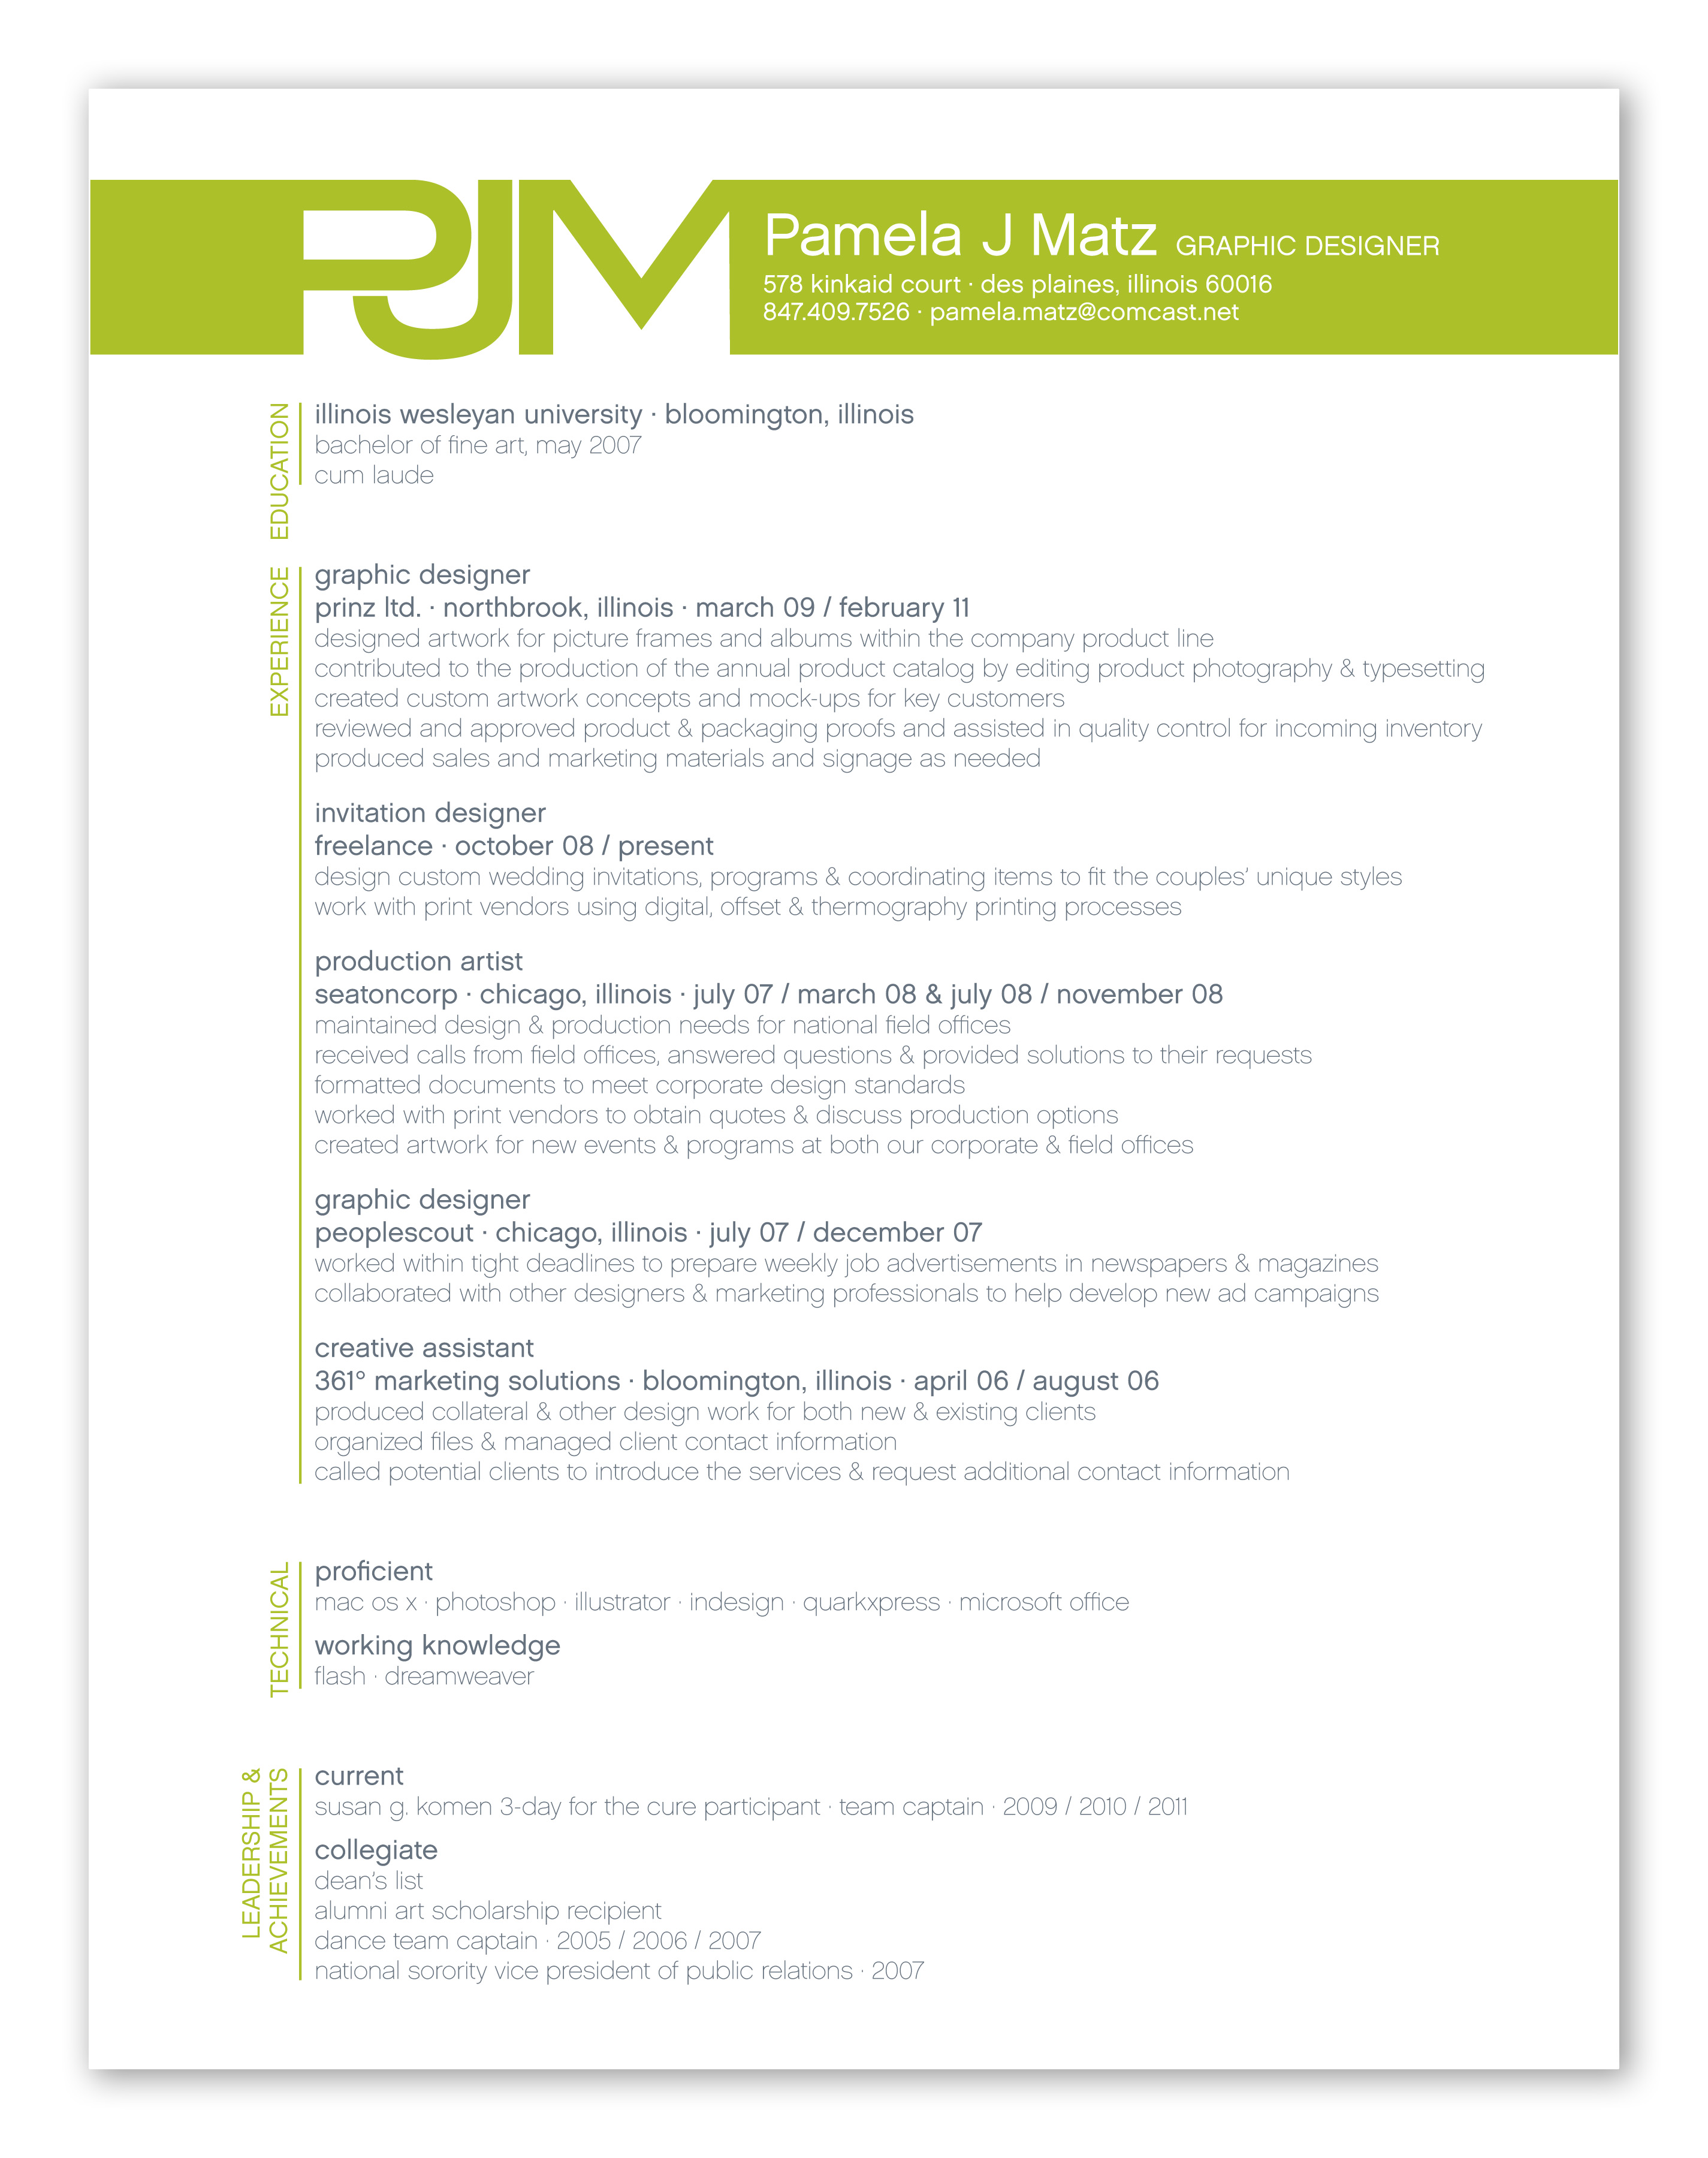 resume by pamela matz at coroflot com